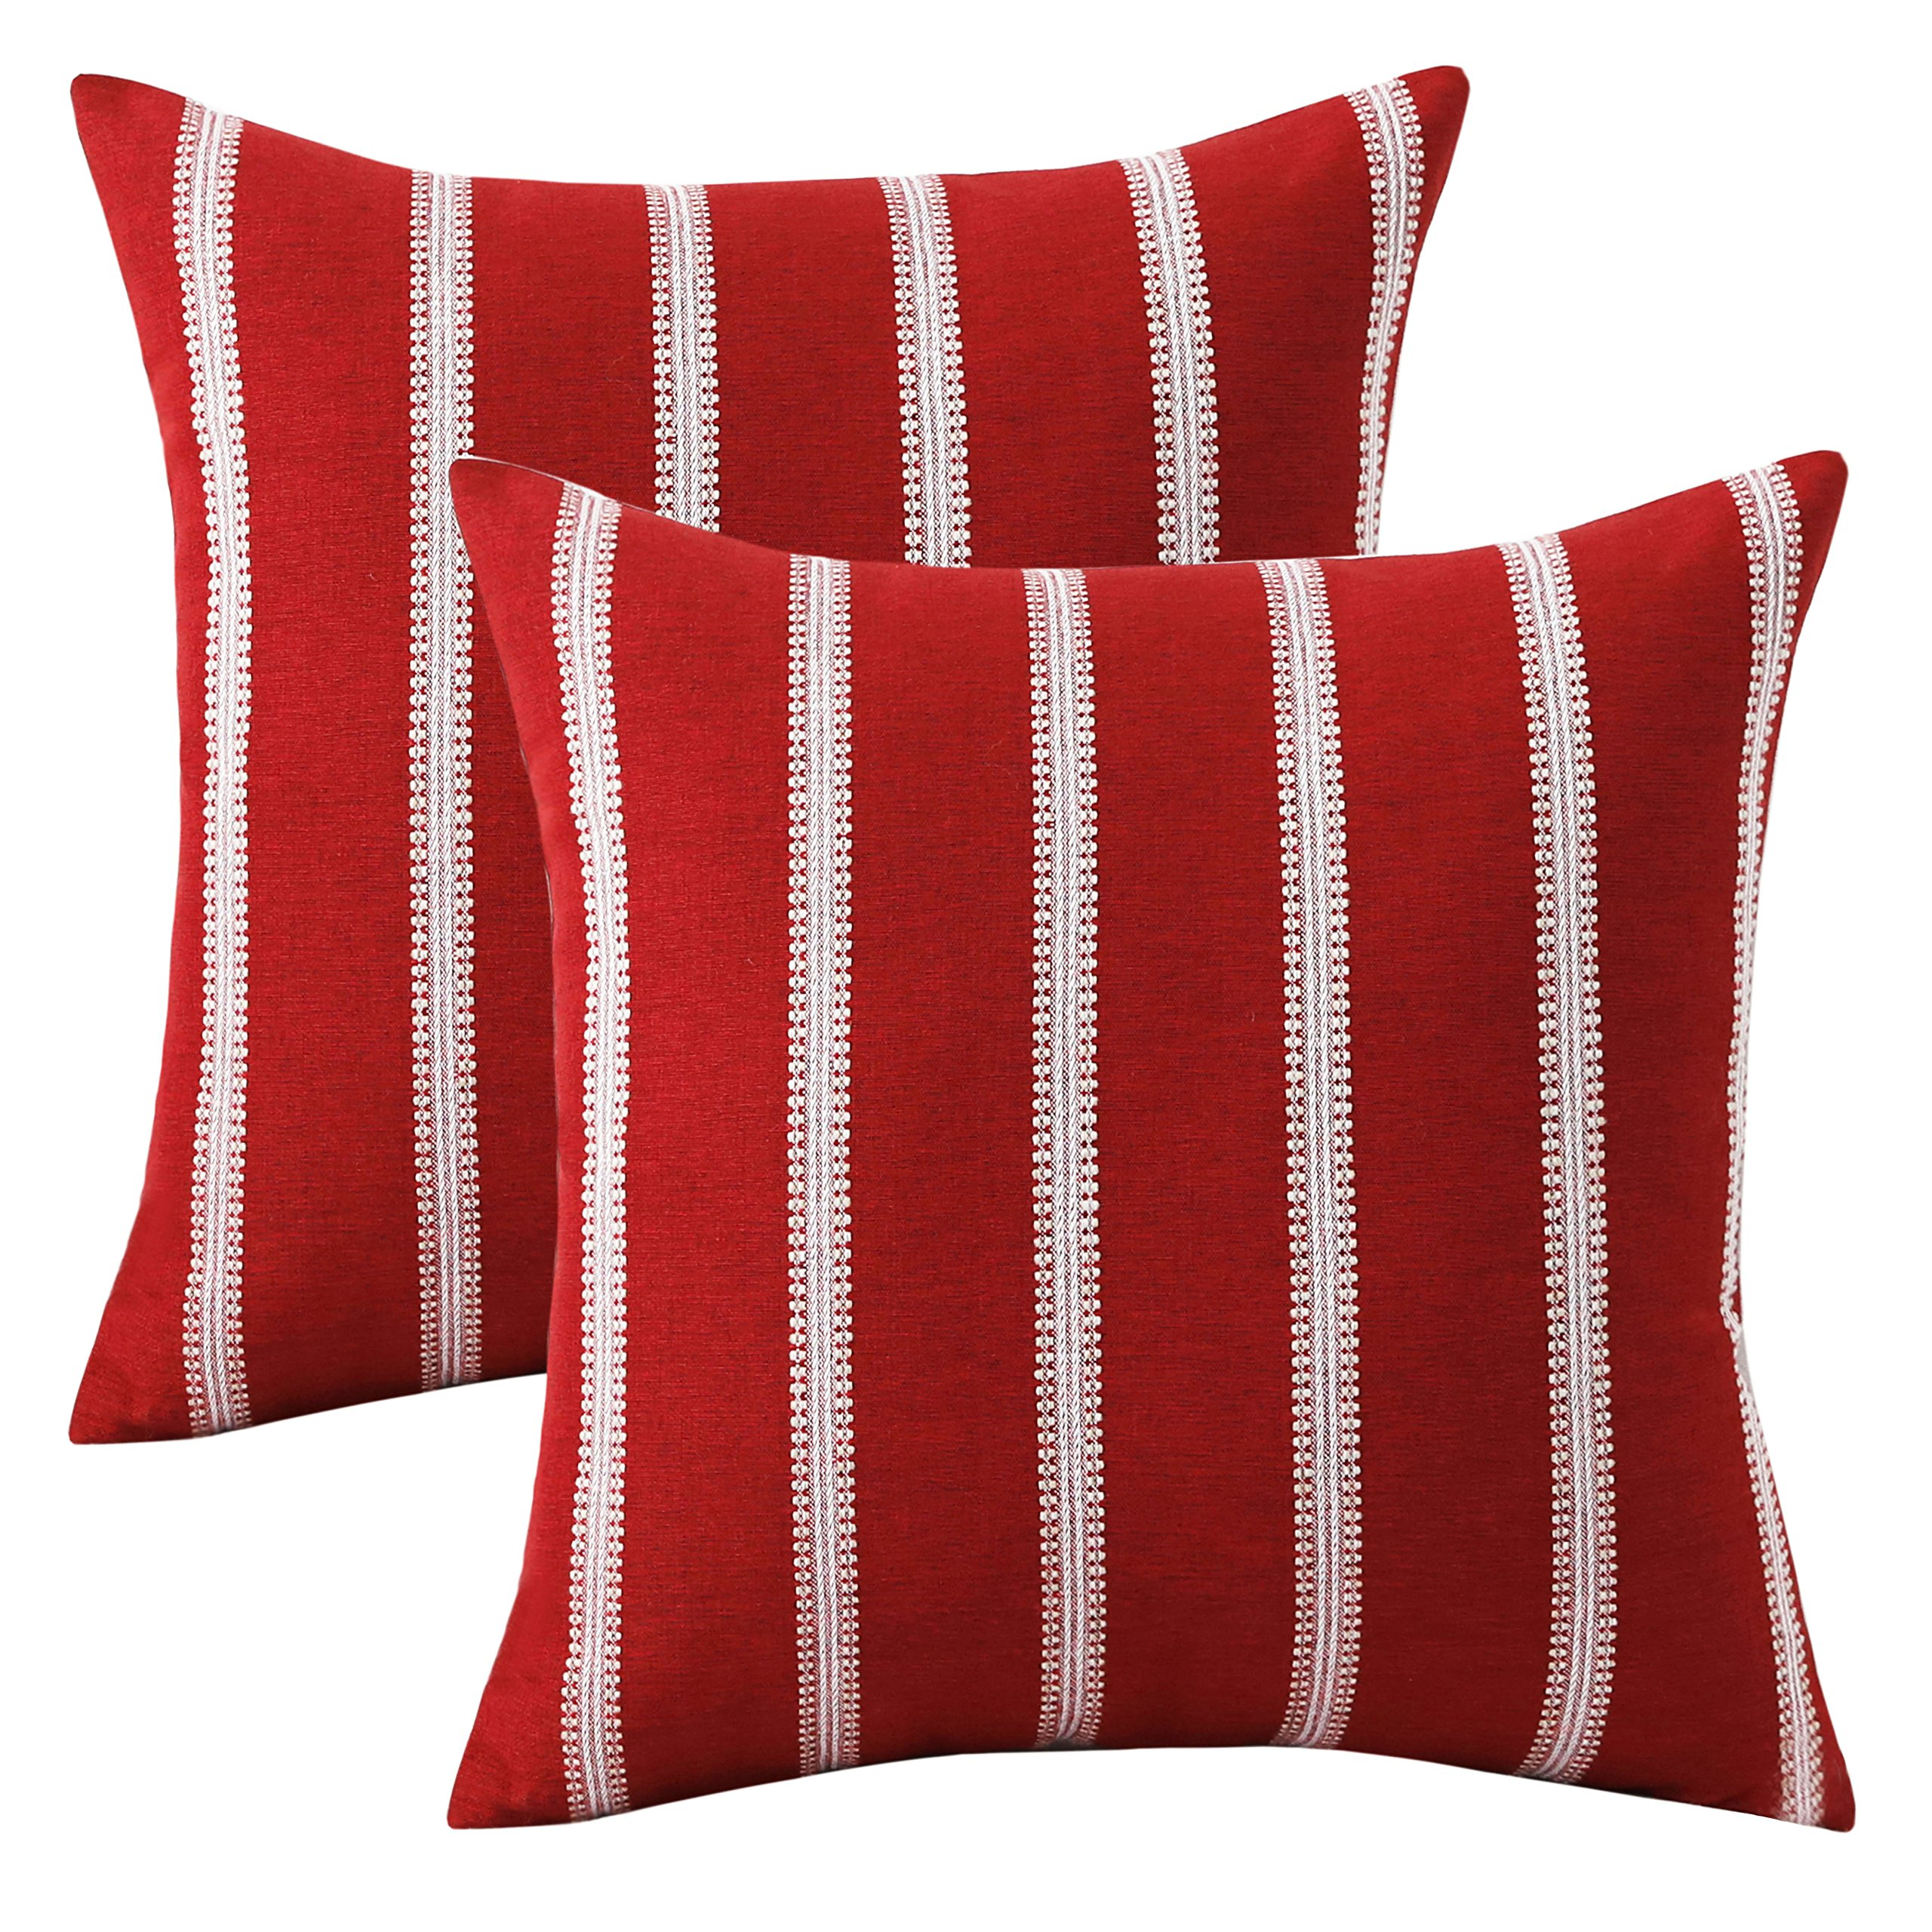 HOME BRILLIANT Embroidered Striped European Euro Pillow Case Sham Covers Bench Gradern Girl's Room, 2 Pack, 24x24 inches(60cm), Red